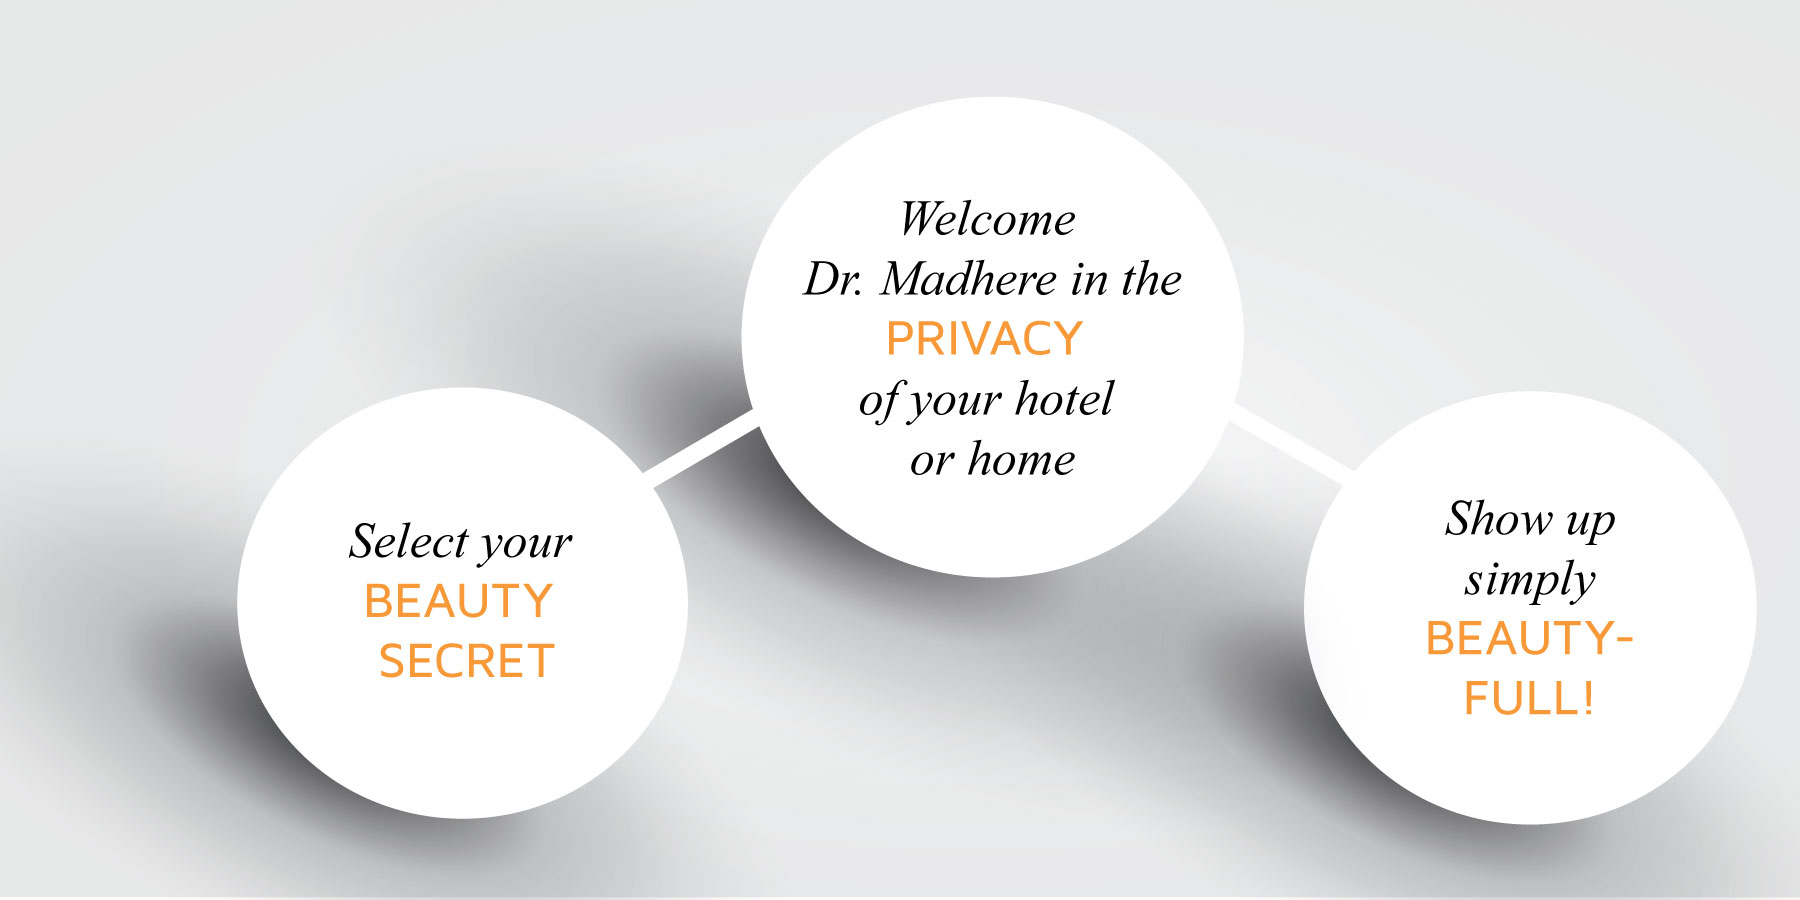 1- Select your Beauty Secret (see Description)  2- Welcome Dr. Madhere in the privacy of your own home, hotel or office.  3- Show up simply Beauty-Full!